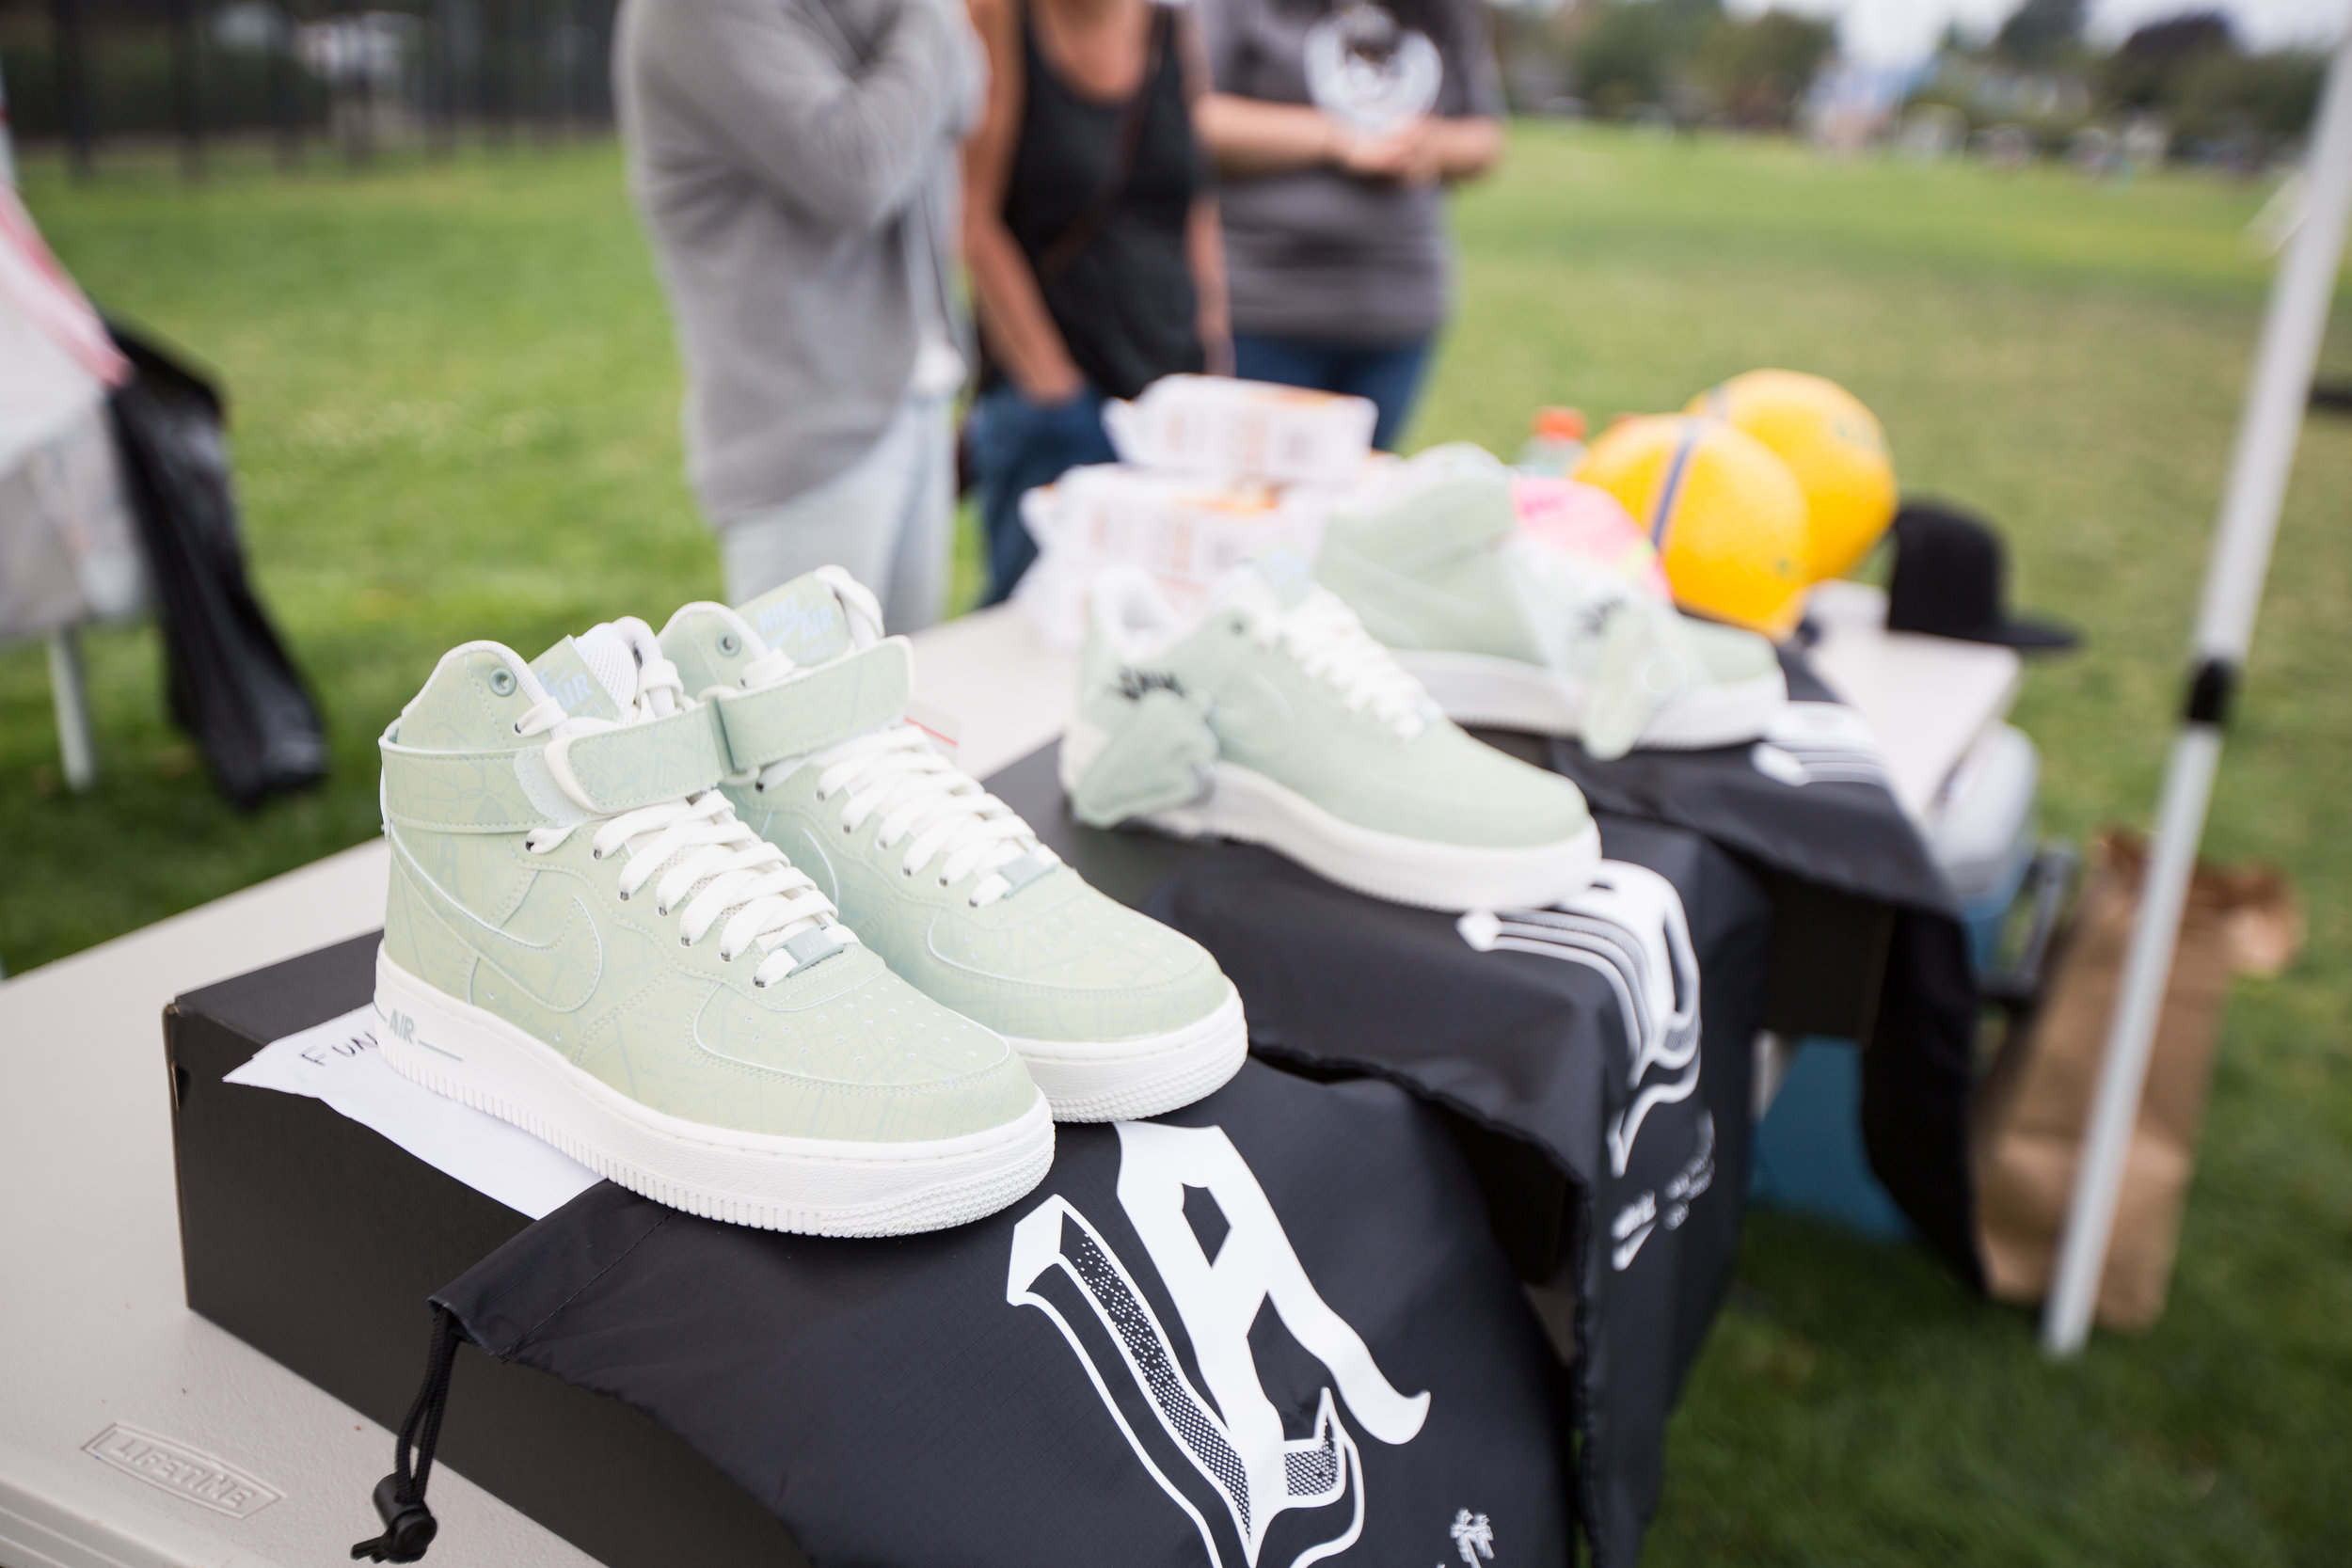 Nike's donated raffle items.